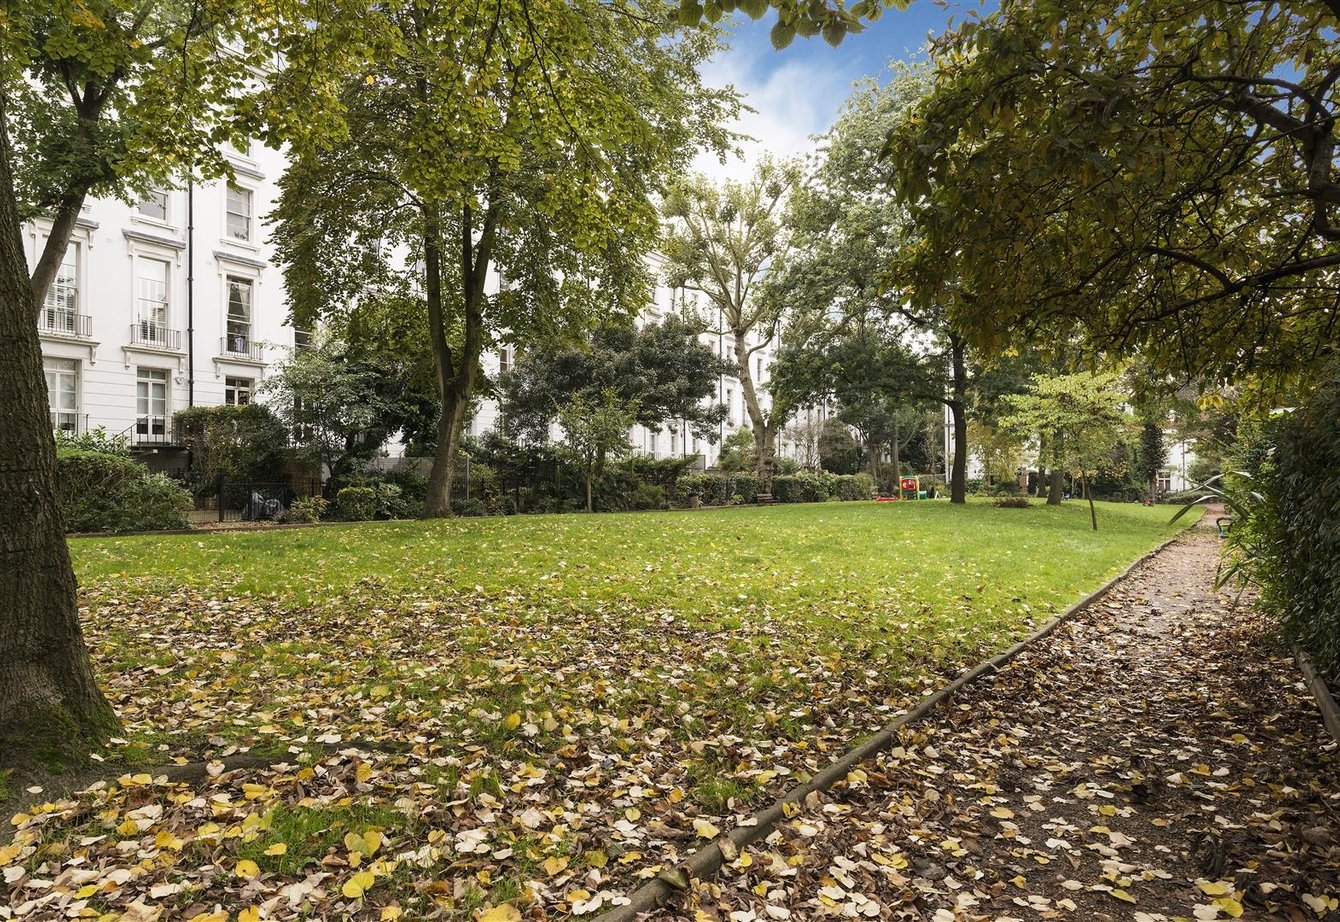 for-sale-bristol-gardens-london-22-view8